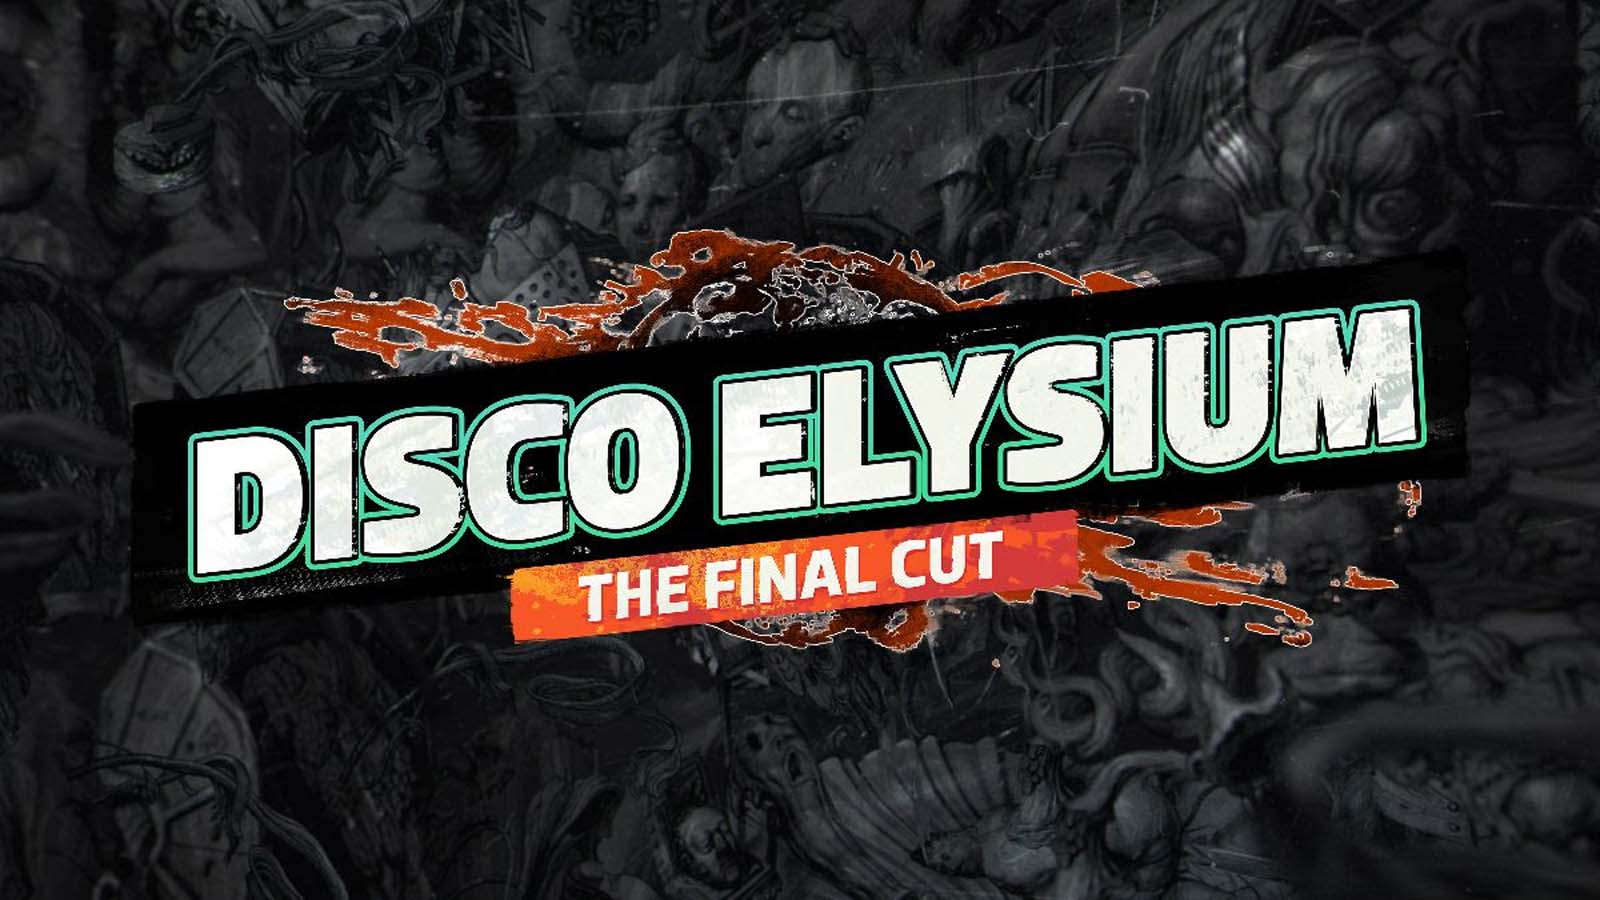 Disco Elysium The Final Cut coming to all current platforms and consoles 2021